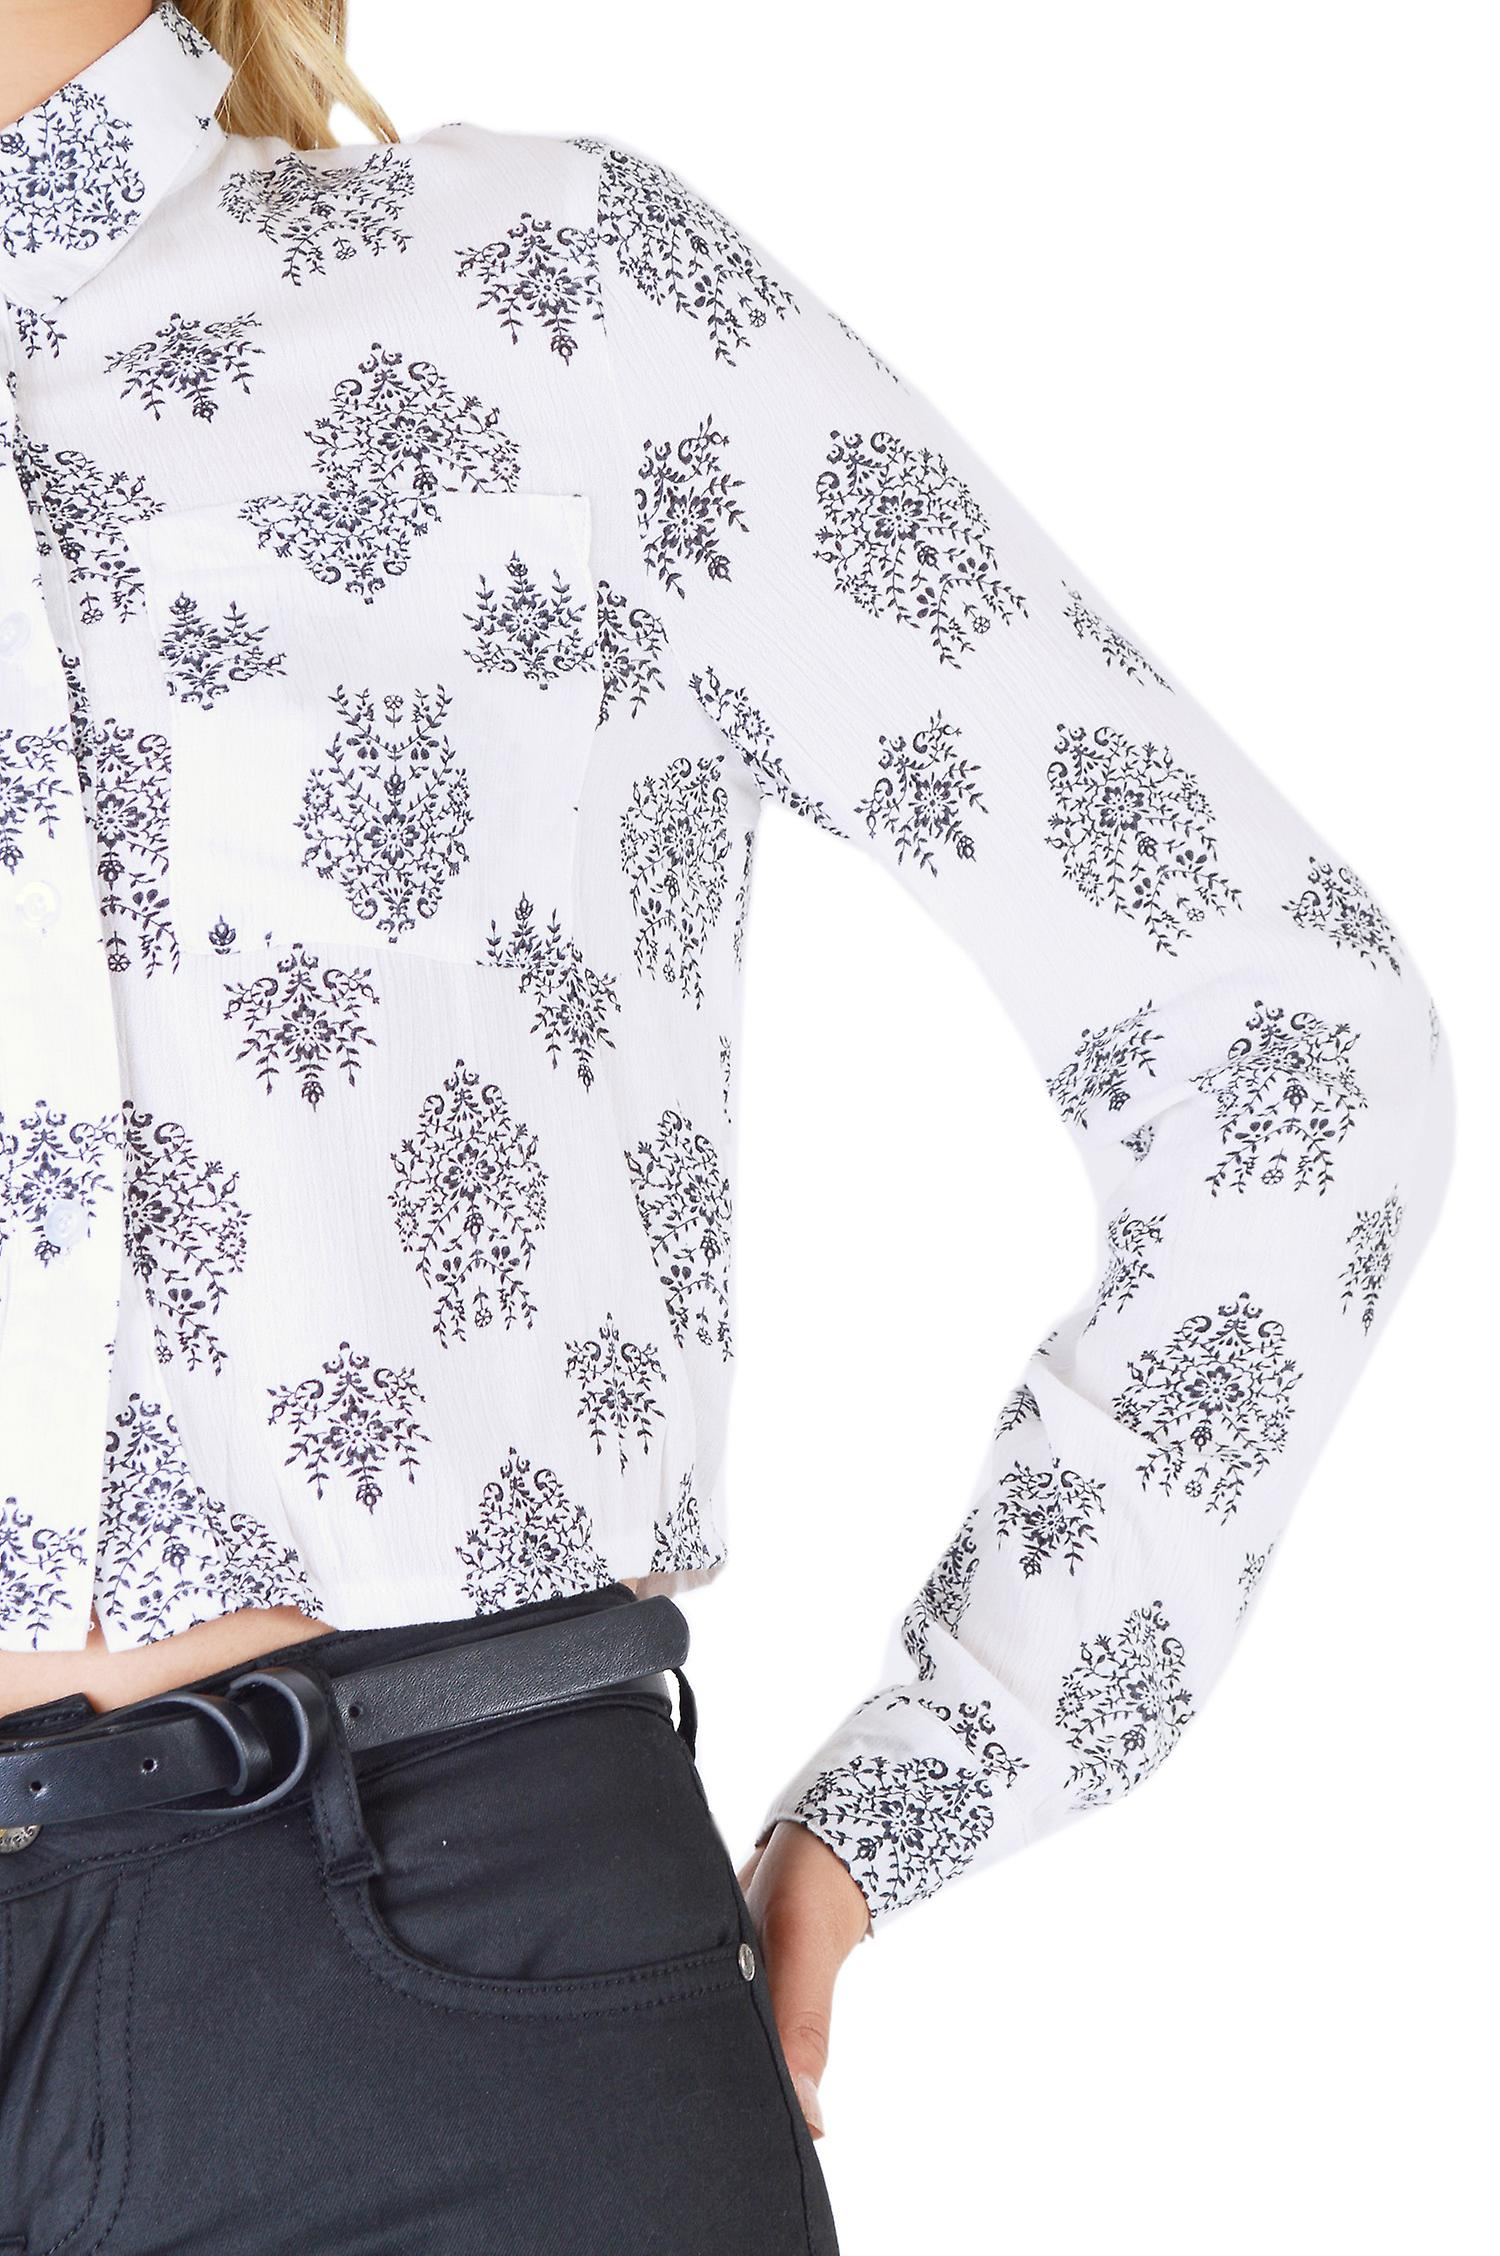 Lola May Cropped White Shirt With All Over Print